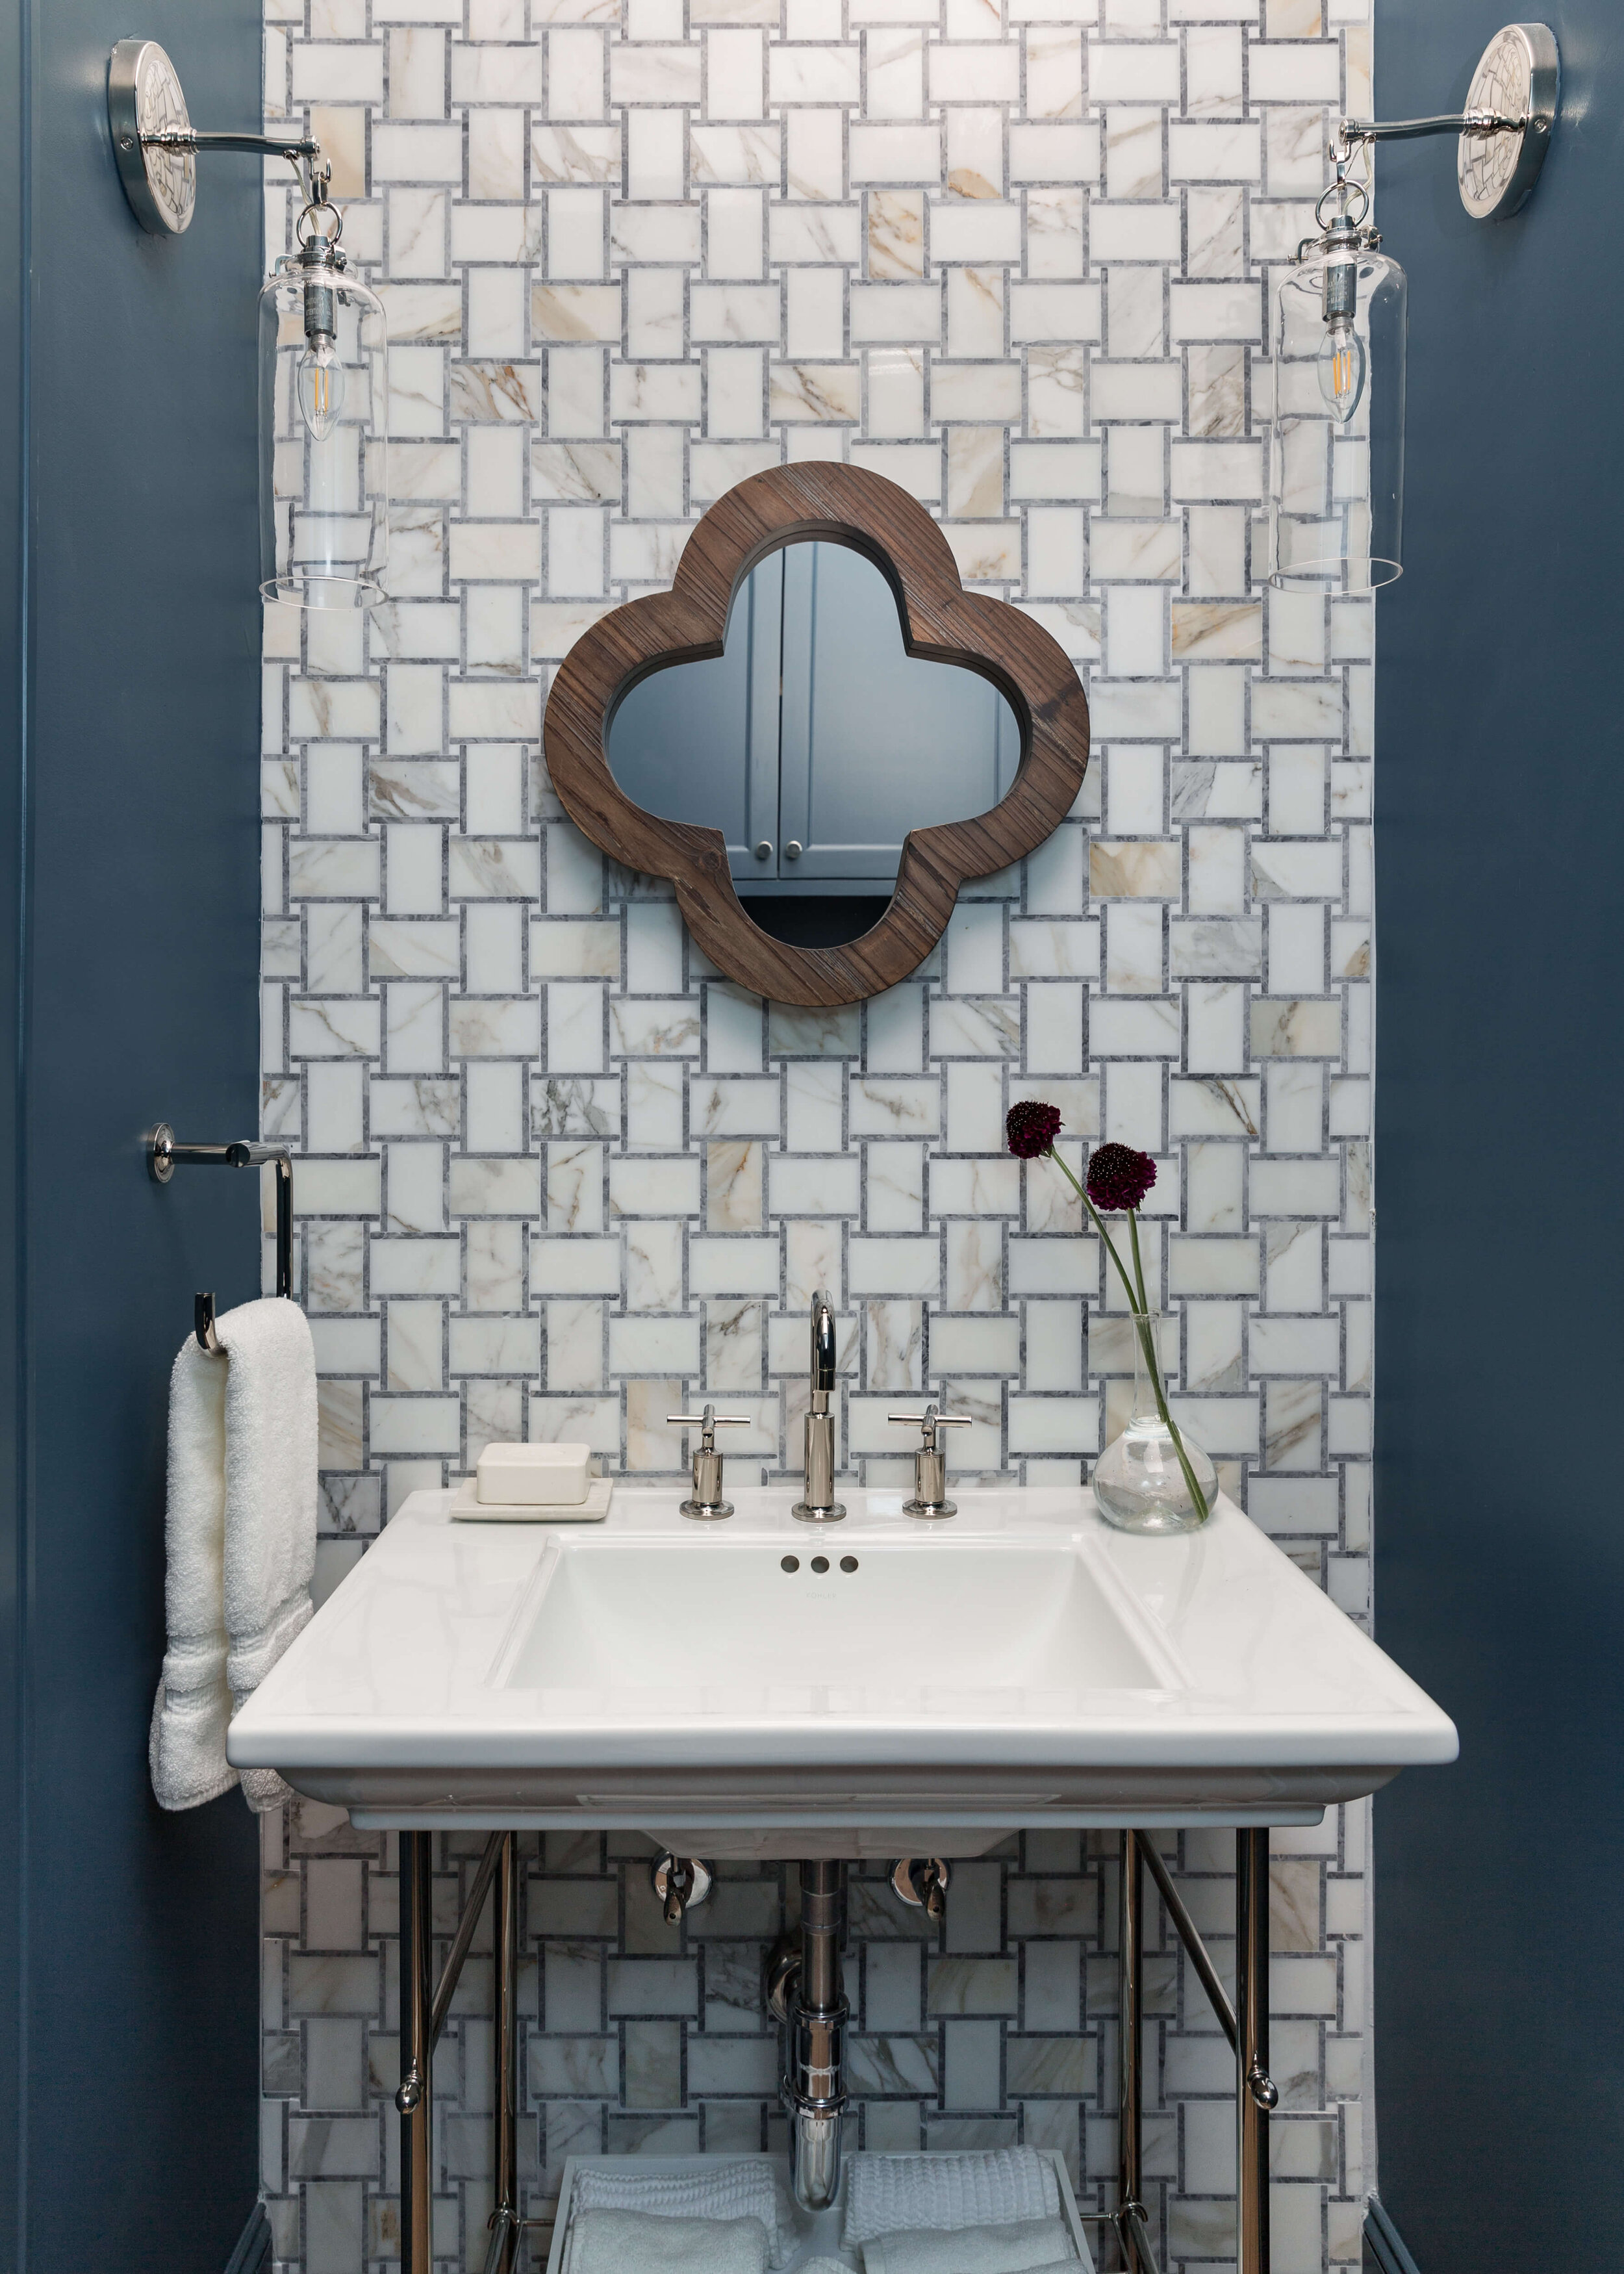 3 Bathrooms With Fun Tile And Fabulous Details Designed